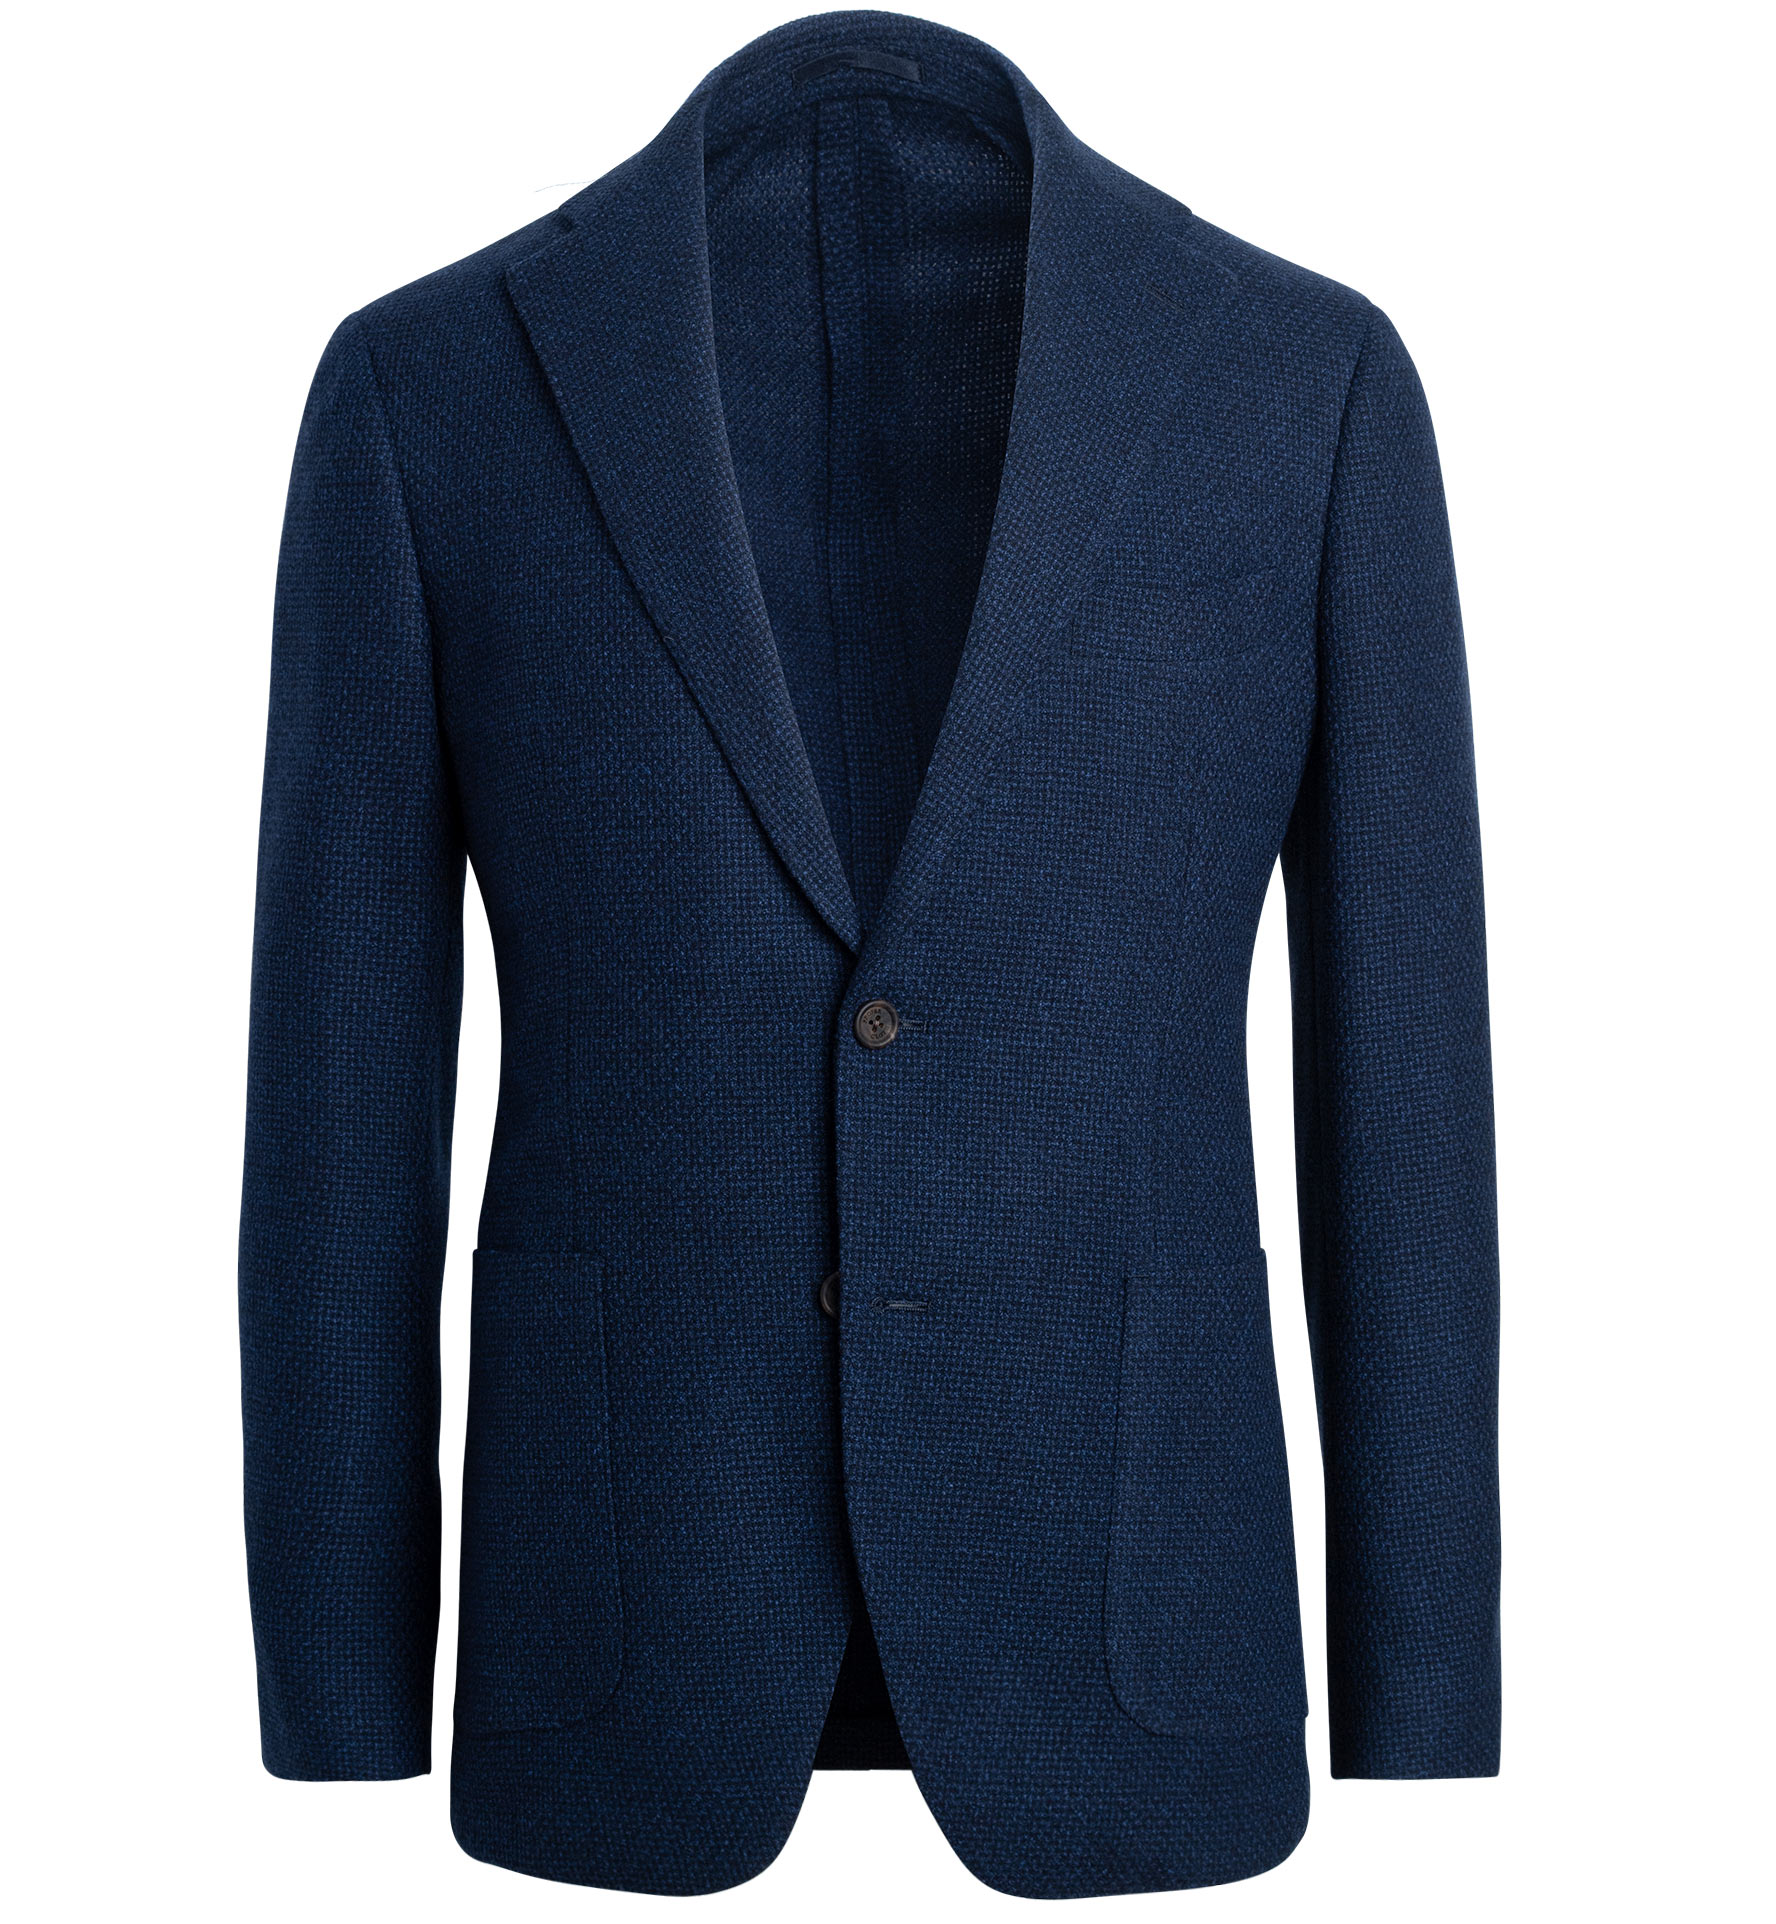 Zoom Image of Bedford Faded Navy Textured Stretch Wool Jacket